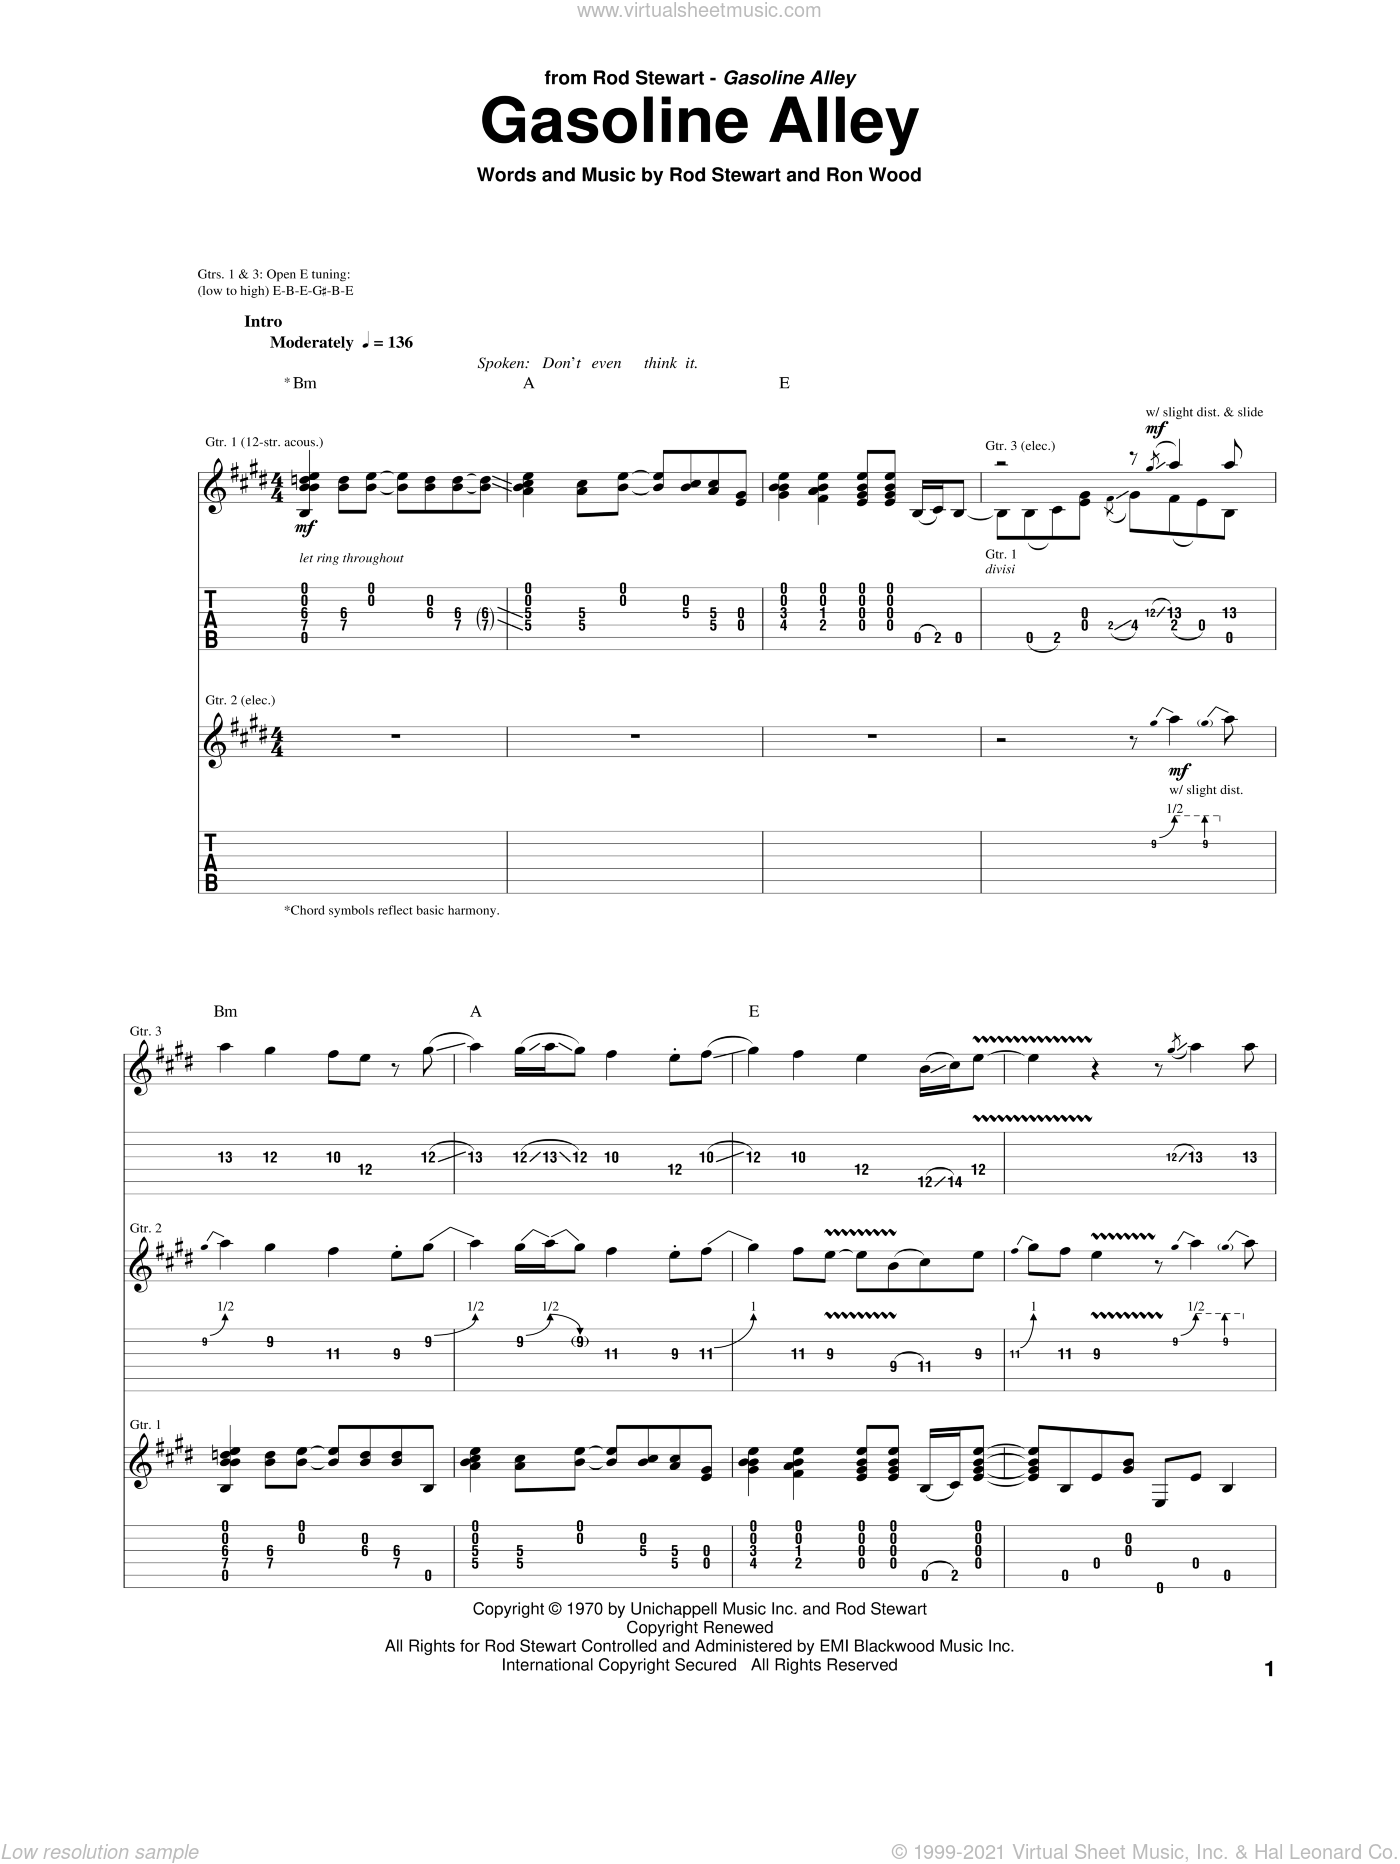 Gasoline Alley sheet music for guitar (tablature) by Ron Wood